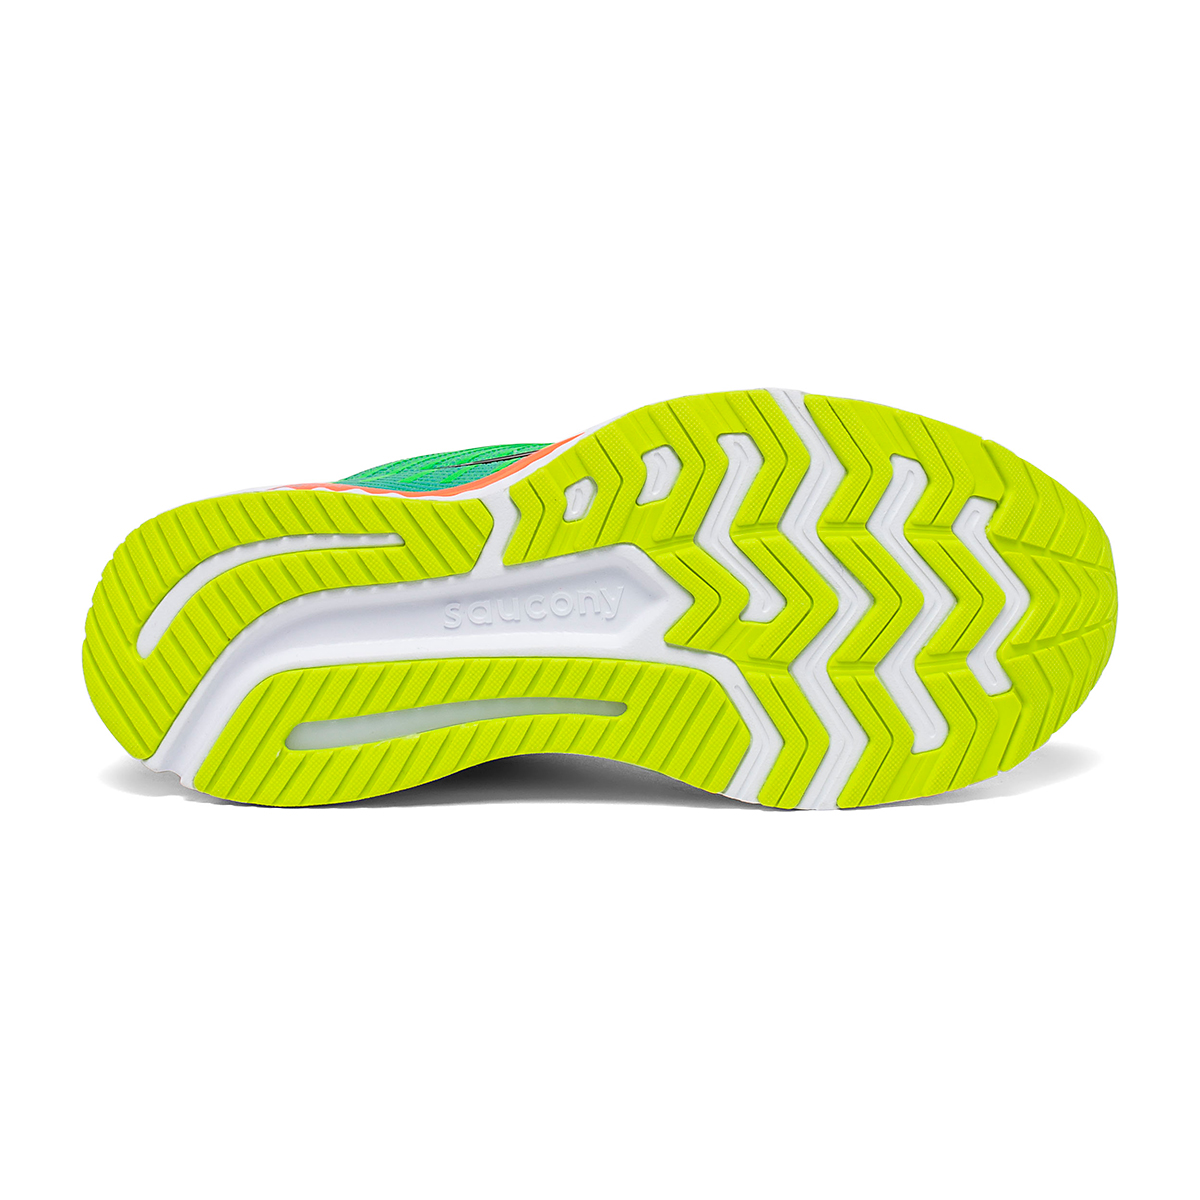 Women's Saucony Guide 13 Running Shoe - Color: Green Mutant - Size: 5 - Width: Regular, Green Mutant, large, image 4